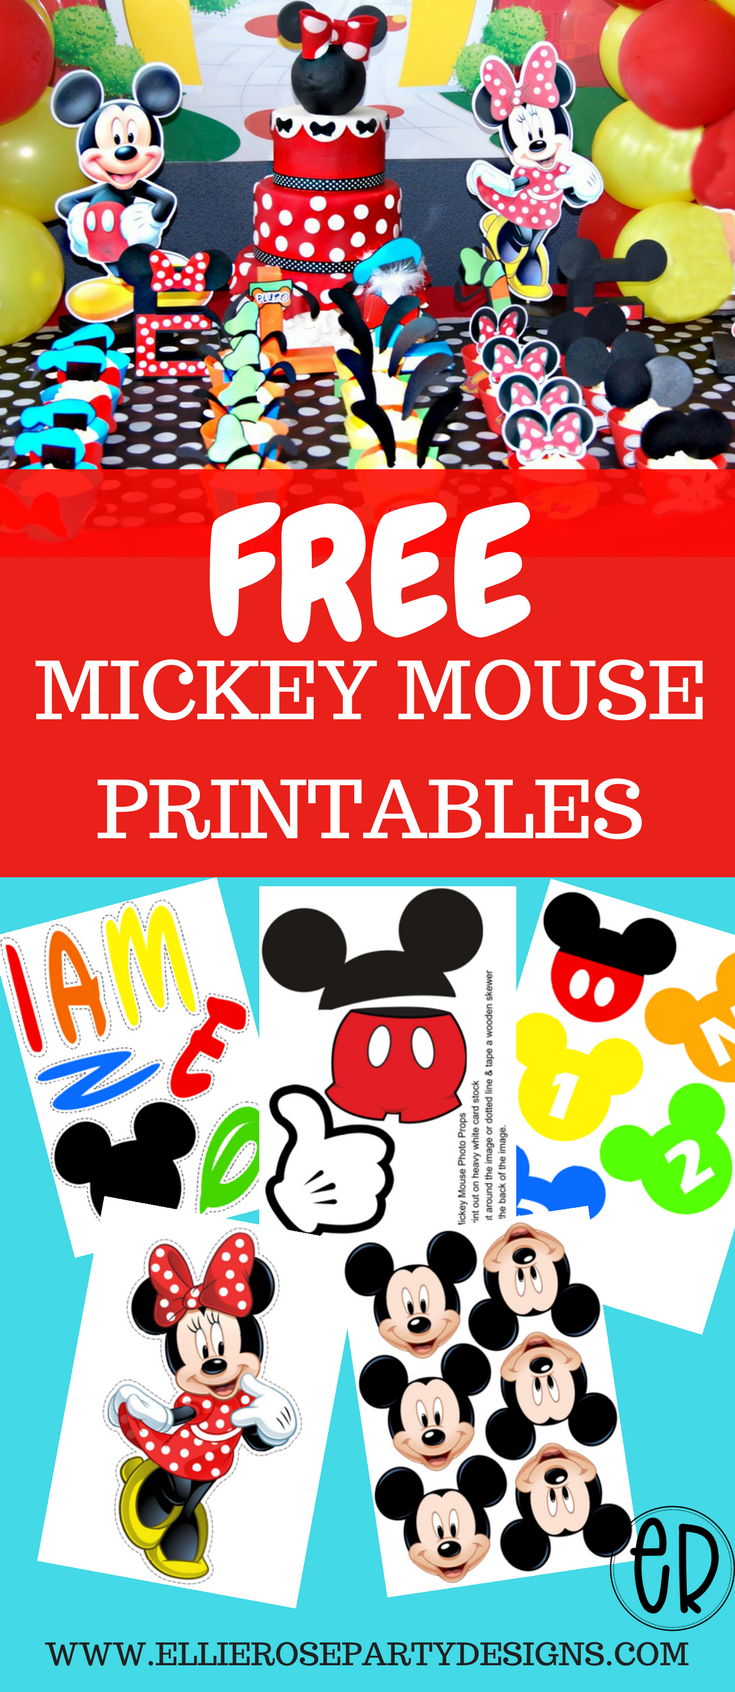 Free Mickey Mouse Printables And Party Ideas. Diy Decorations For - Free Mickey Mouse Printables